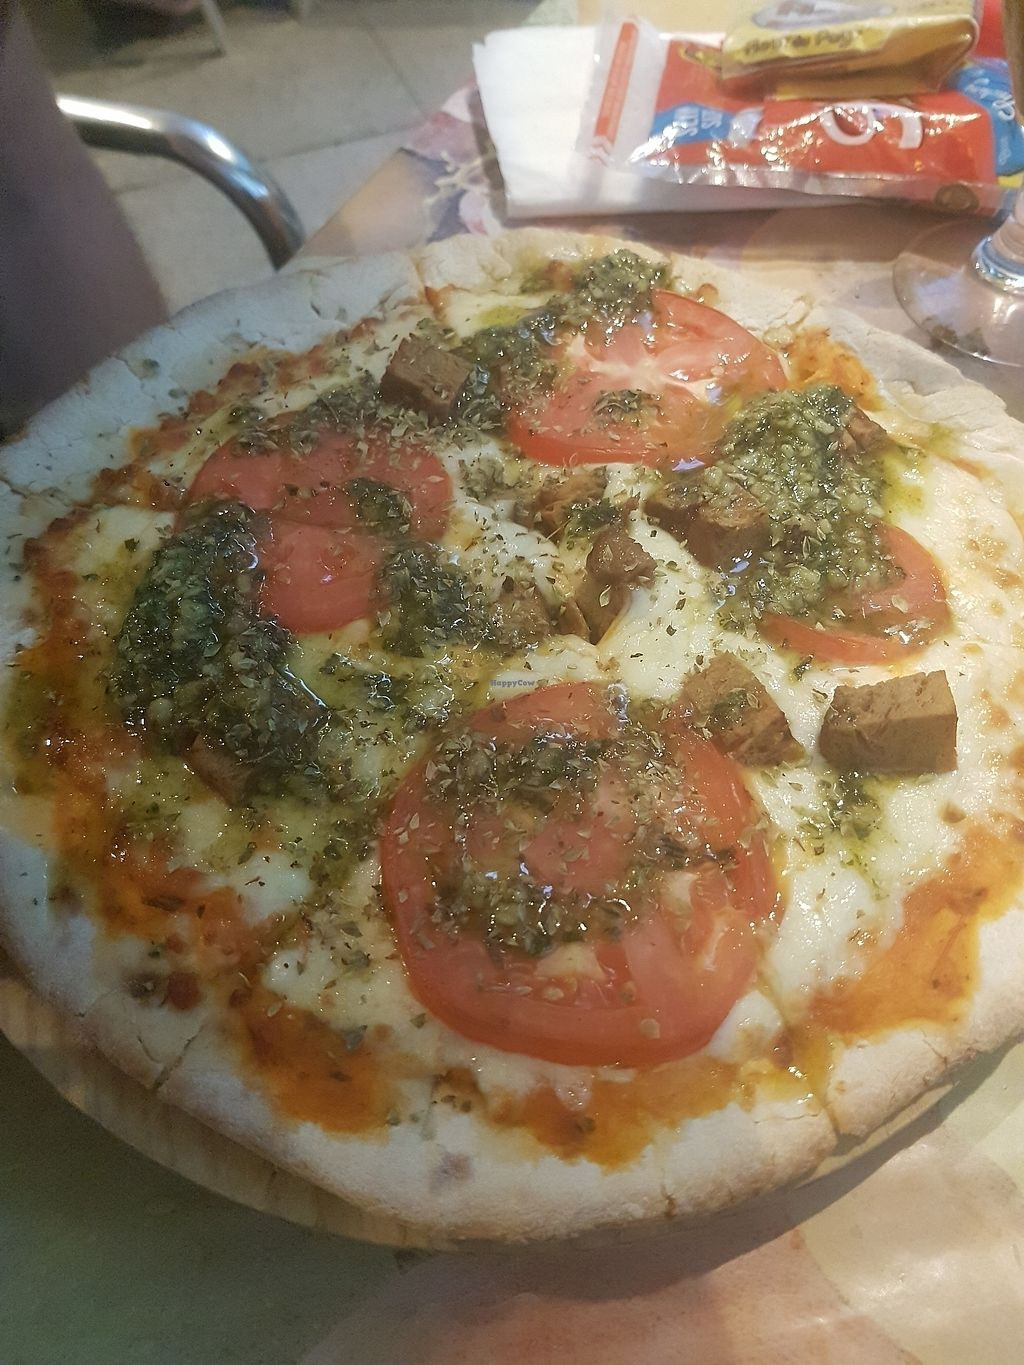 """Photo of Vegetalia - Raval  by <a href=""""/members/profile/NoraK"""">NoraK</a> <br/>pizza <br/> August 16, 2017  - <a href='/contact/abuse/image/53501/293324'>Report</a>"""